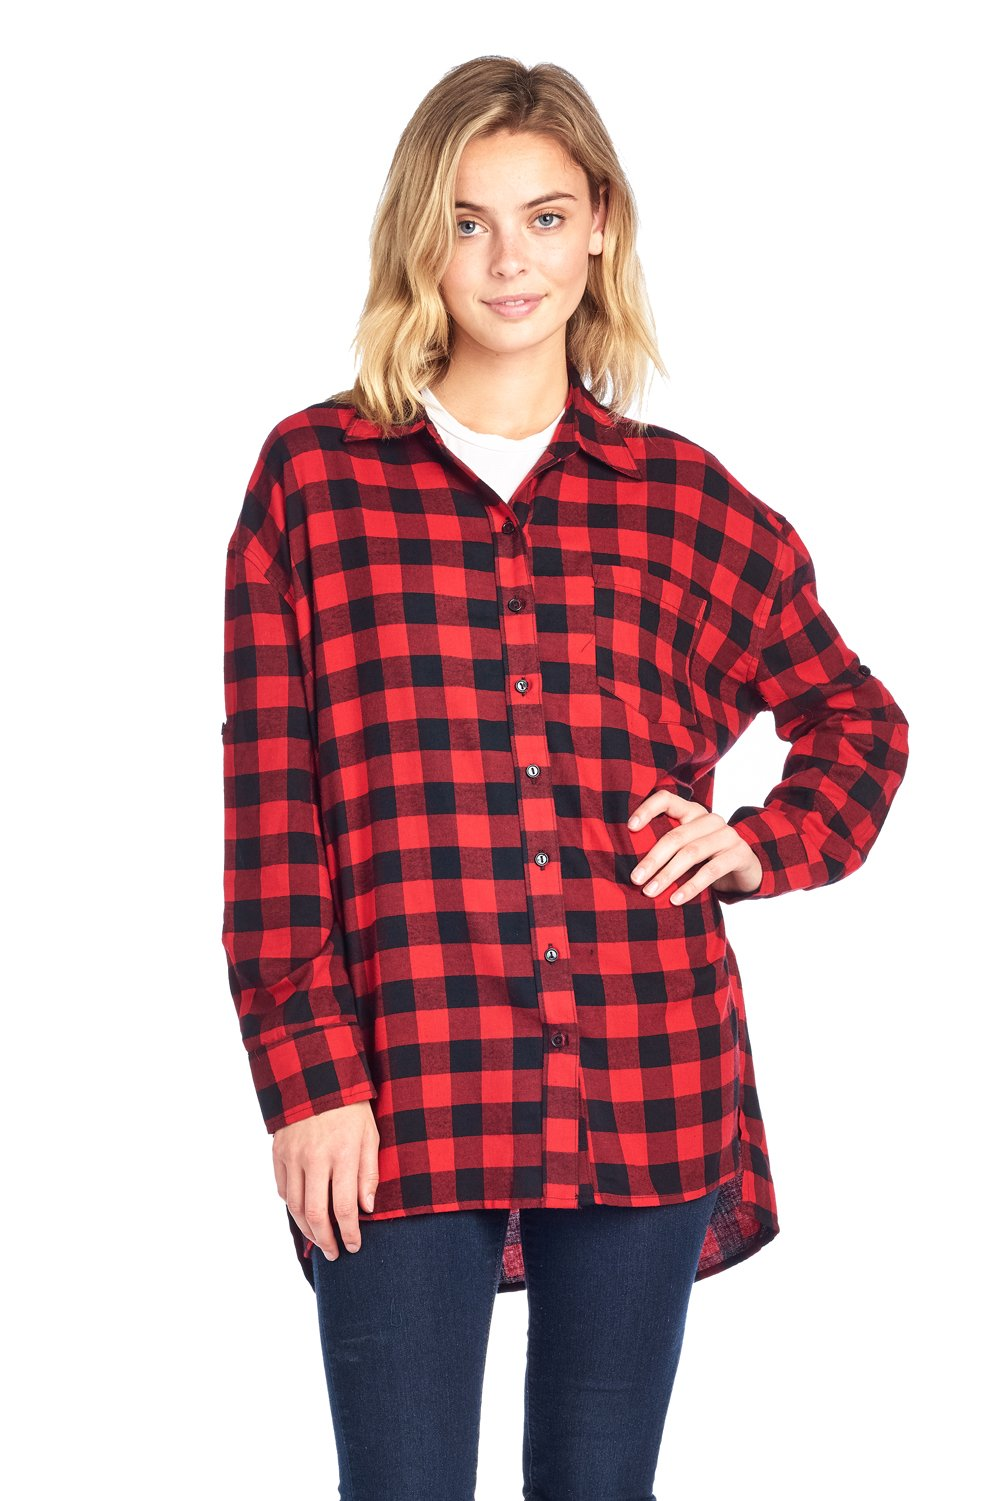 ICONICC Women's Plaid Oversize Button Down Top with Front Pocket (K1001_RED_S)